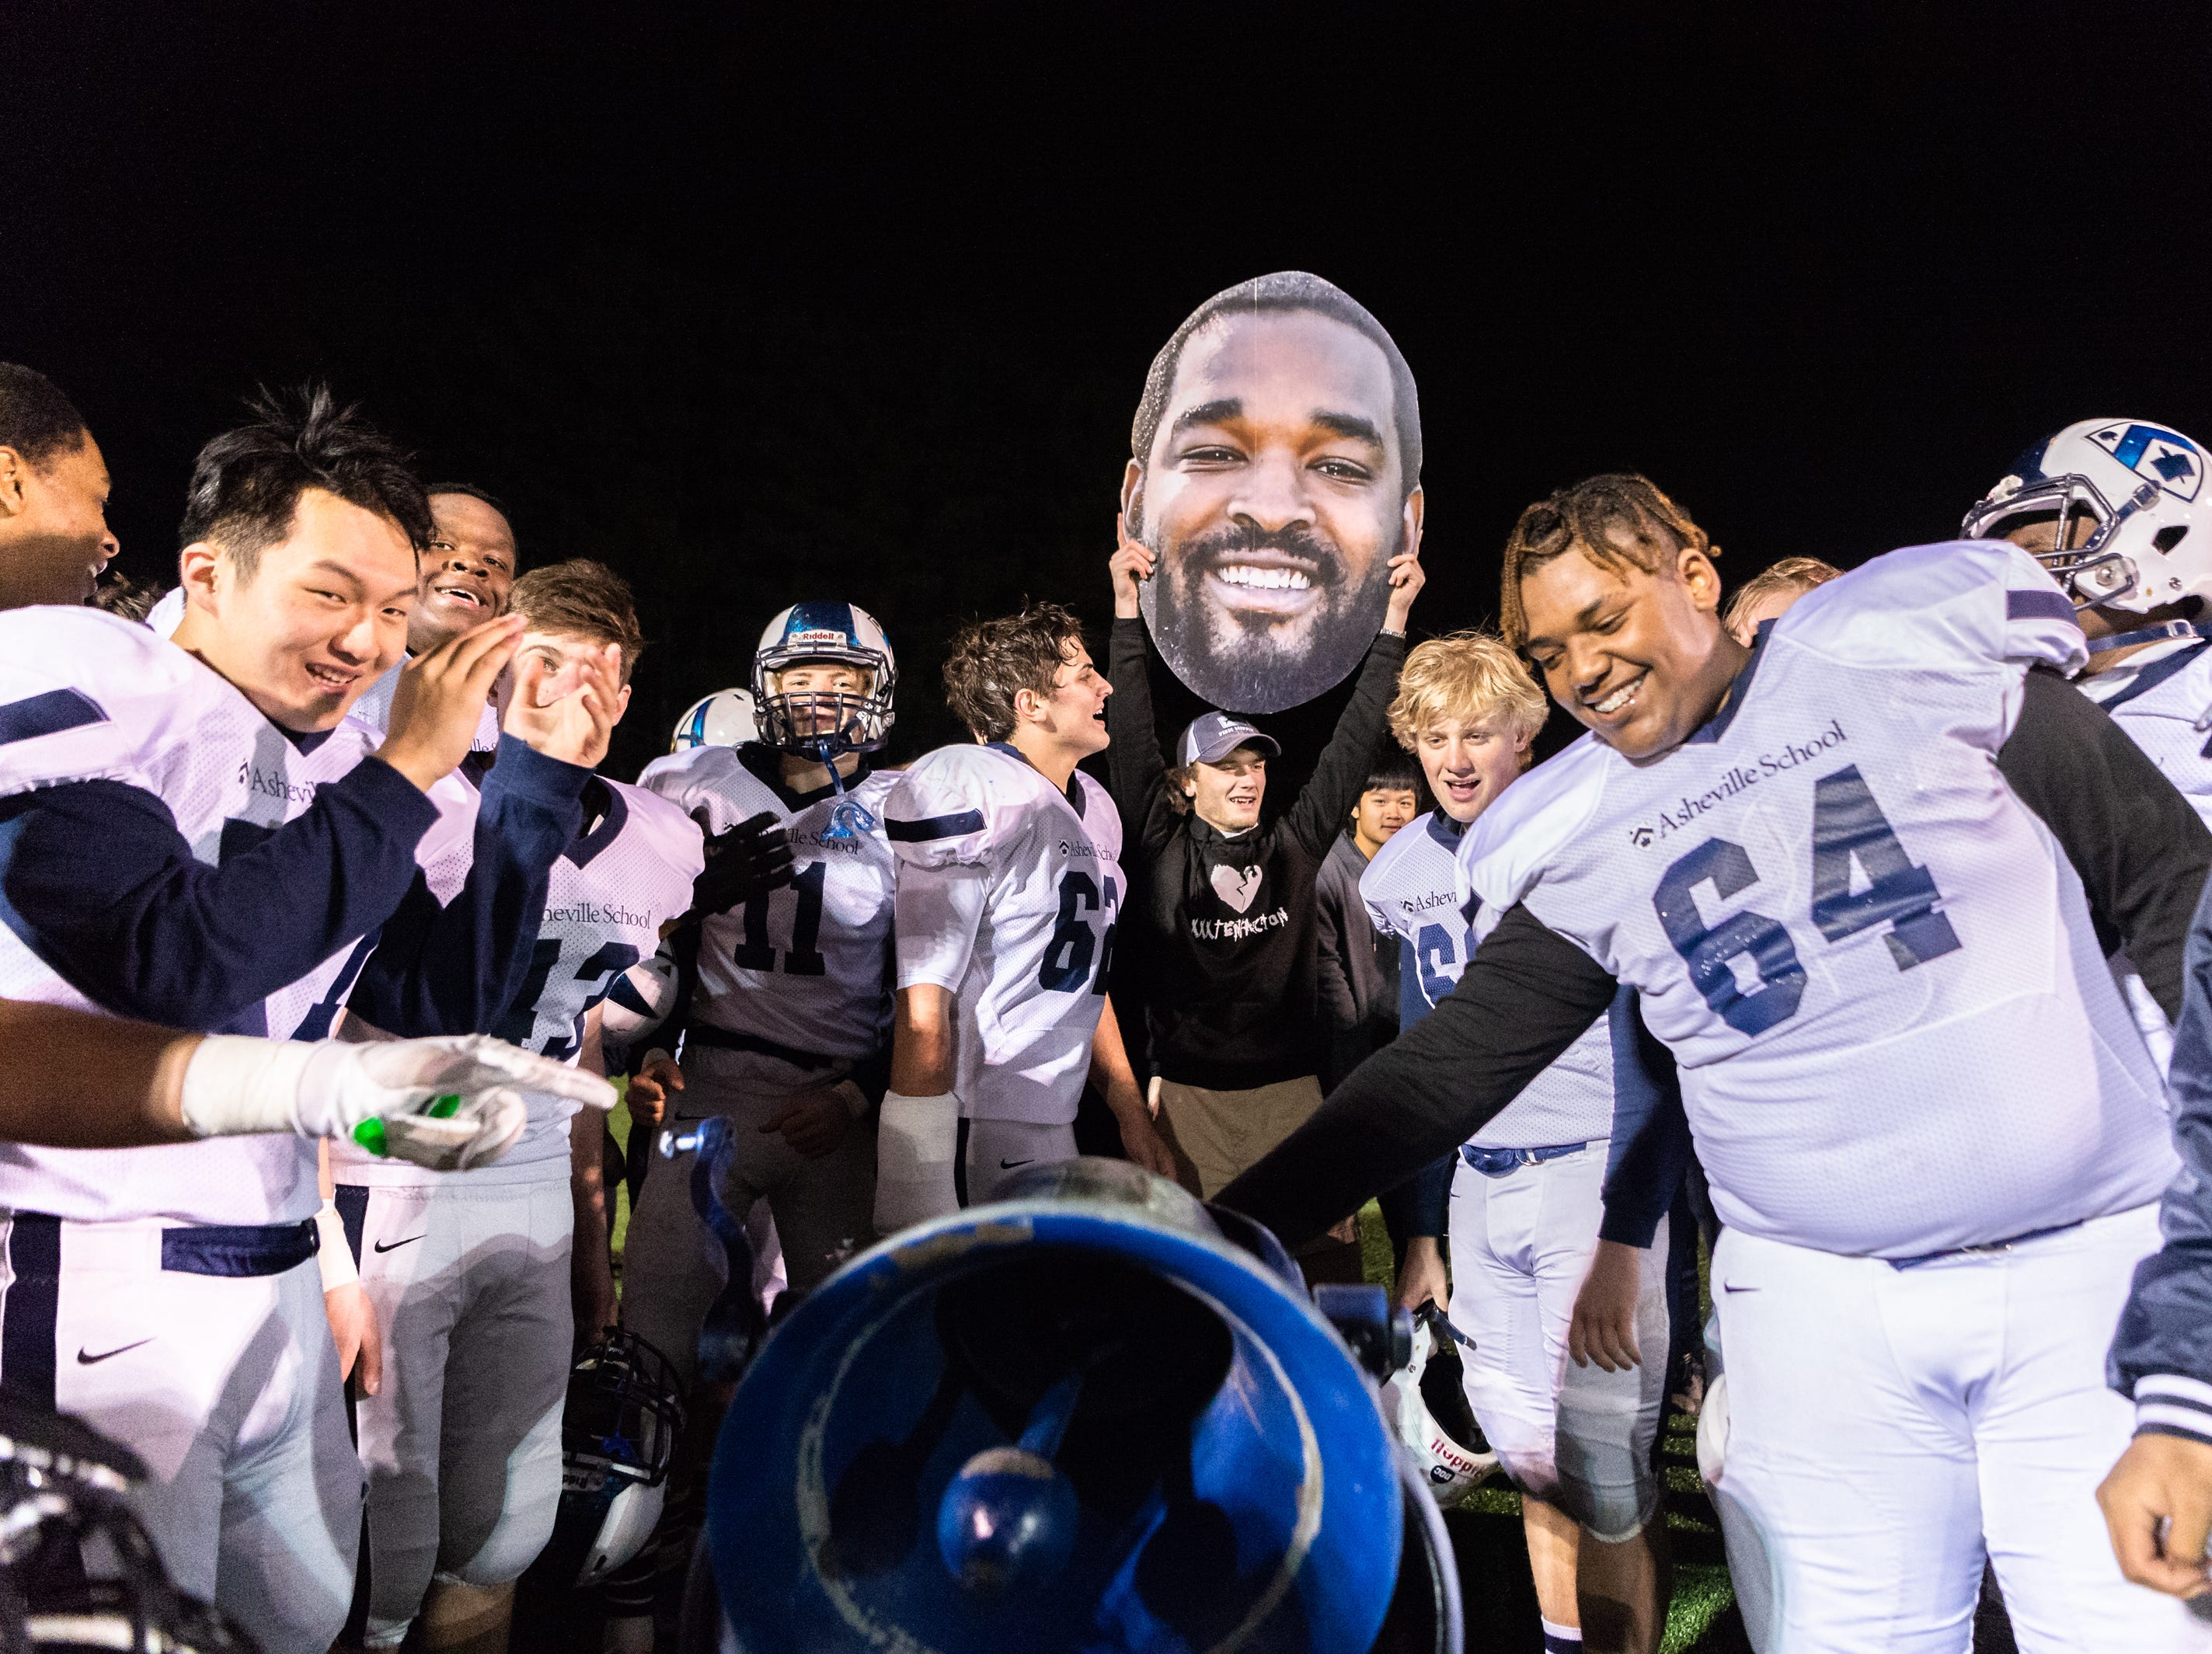 The Asheville School football team celebrates their 33-28 win over Southlake Christian by ringing a bell behind their endzone after their Friday night second round semifinal game Nov. 9, 2018. Asheville School's win advances them to the NCISAA Division III state championship game.